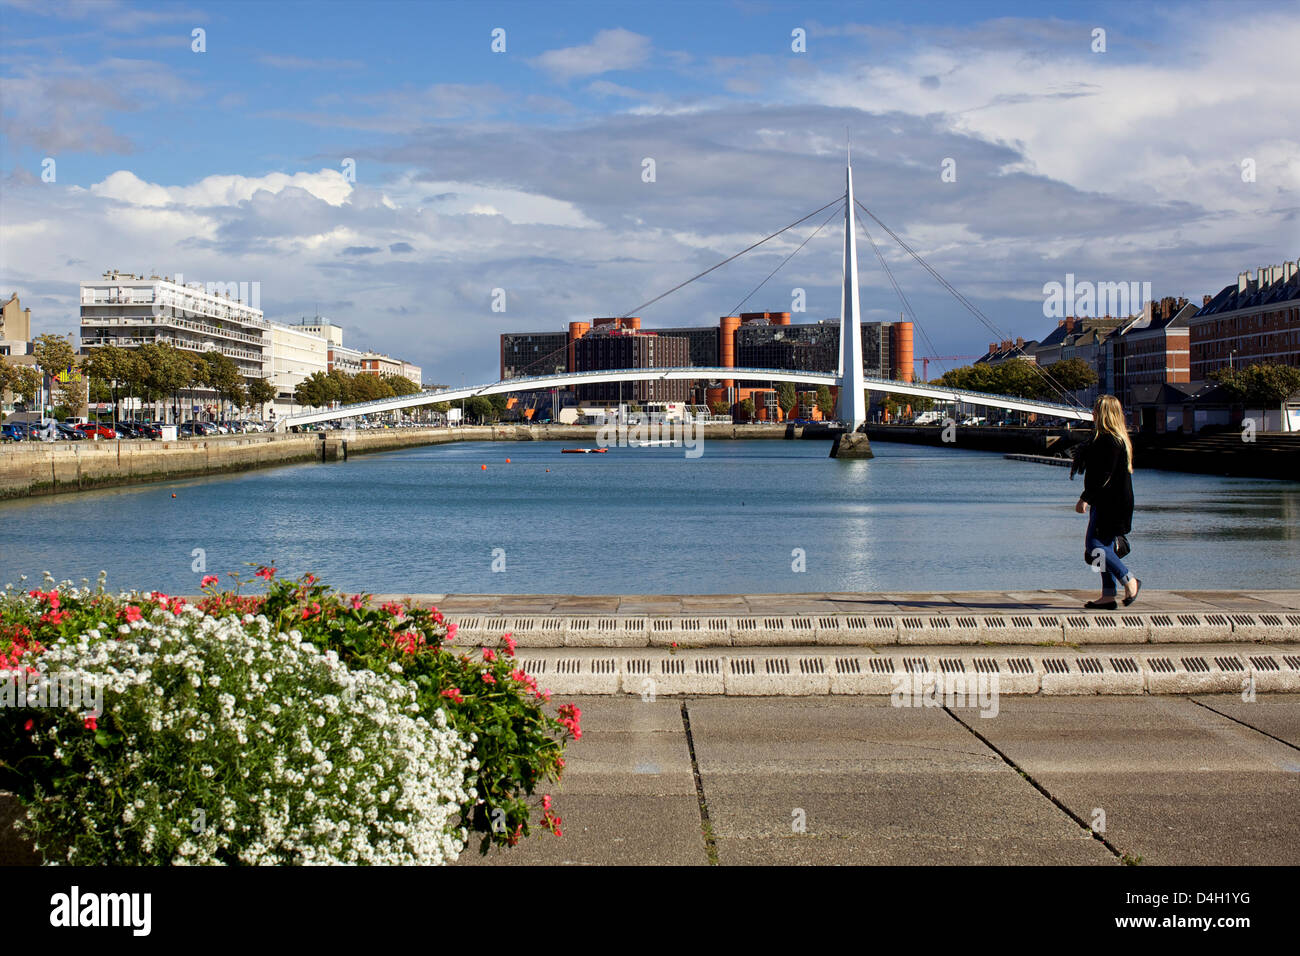 View over the new Passerelle, city center Le Havre, Normandy, France - Stock Image